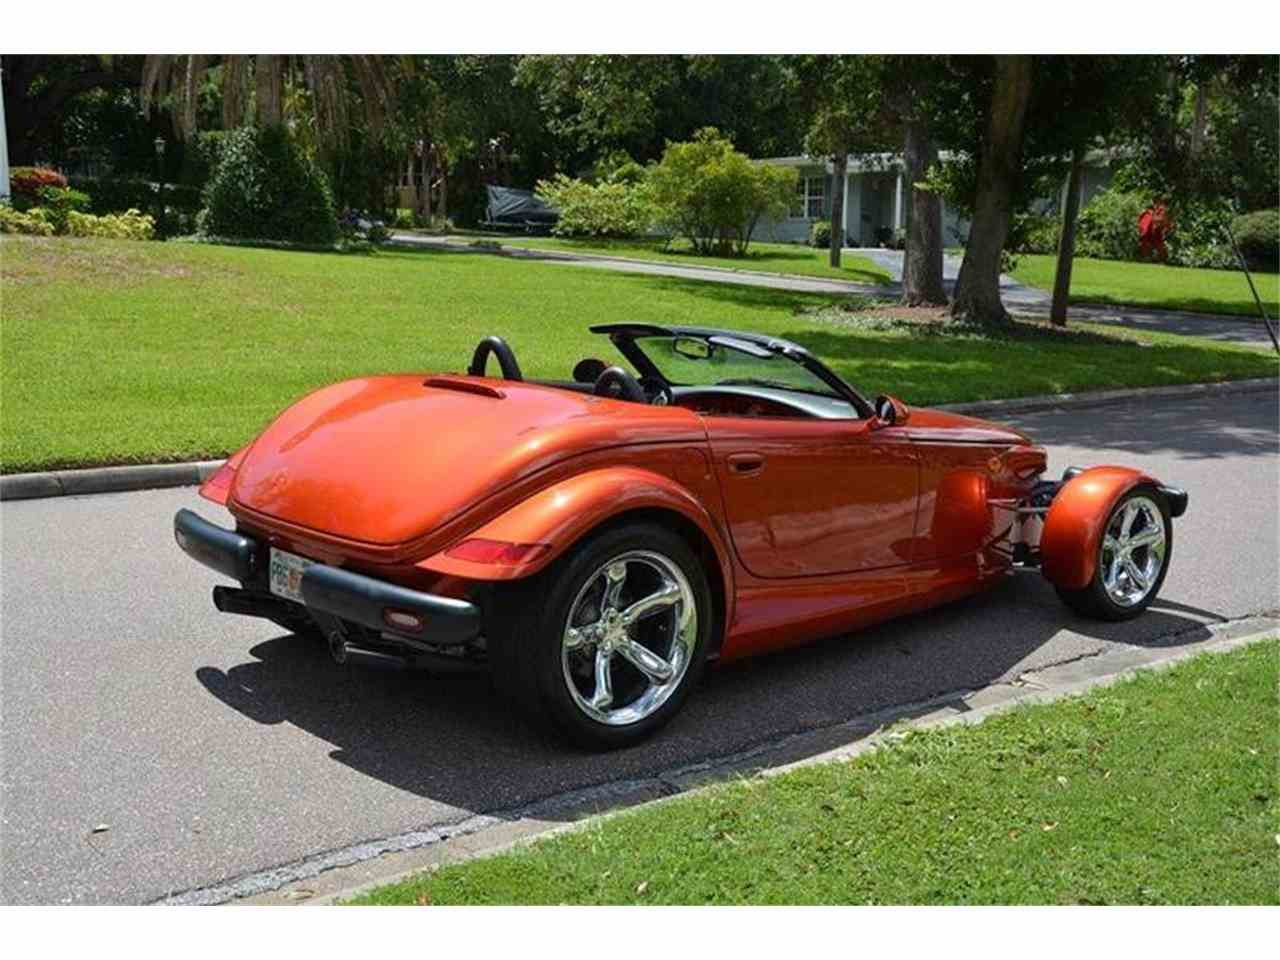 2001 Plymouth Prowler For Sale Classiccars Com Cc 1004120